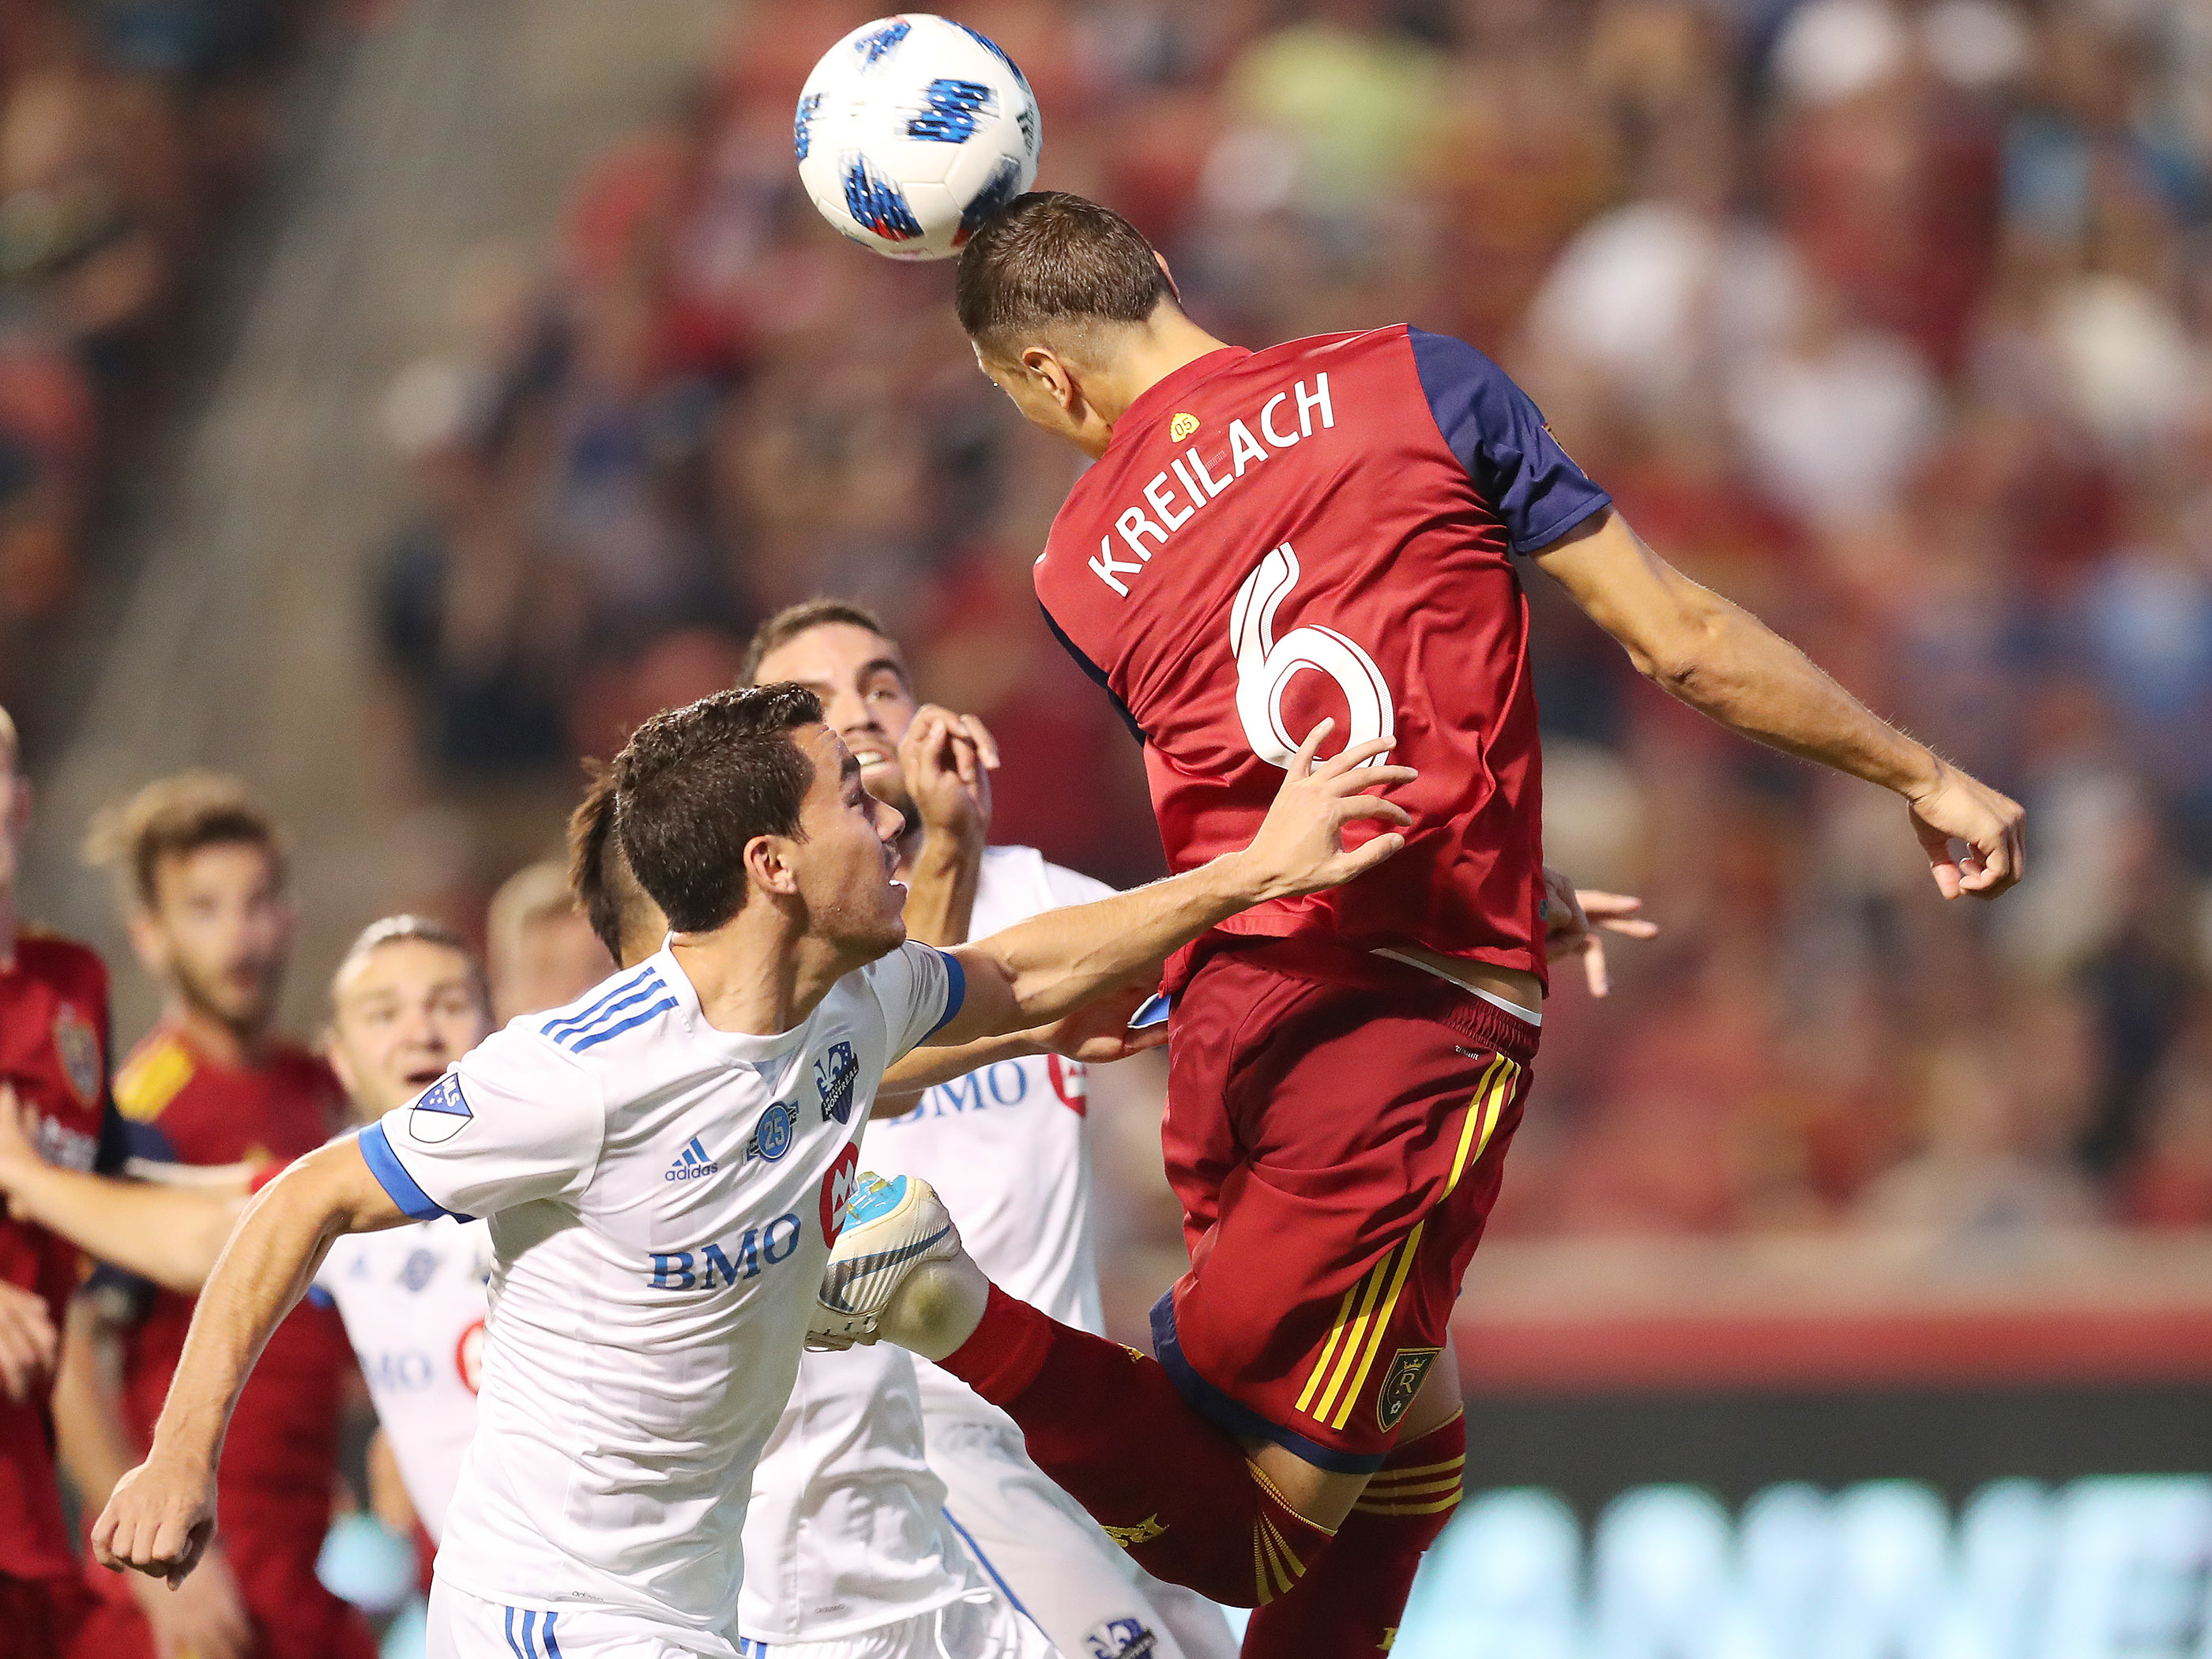 Real Salt Lake midfielder Damir Kreilach (6) heads the ball against Montreal Impact in Sandy on Saturday, Aug. 11, 2018. Real tied Montreal 1-1.